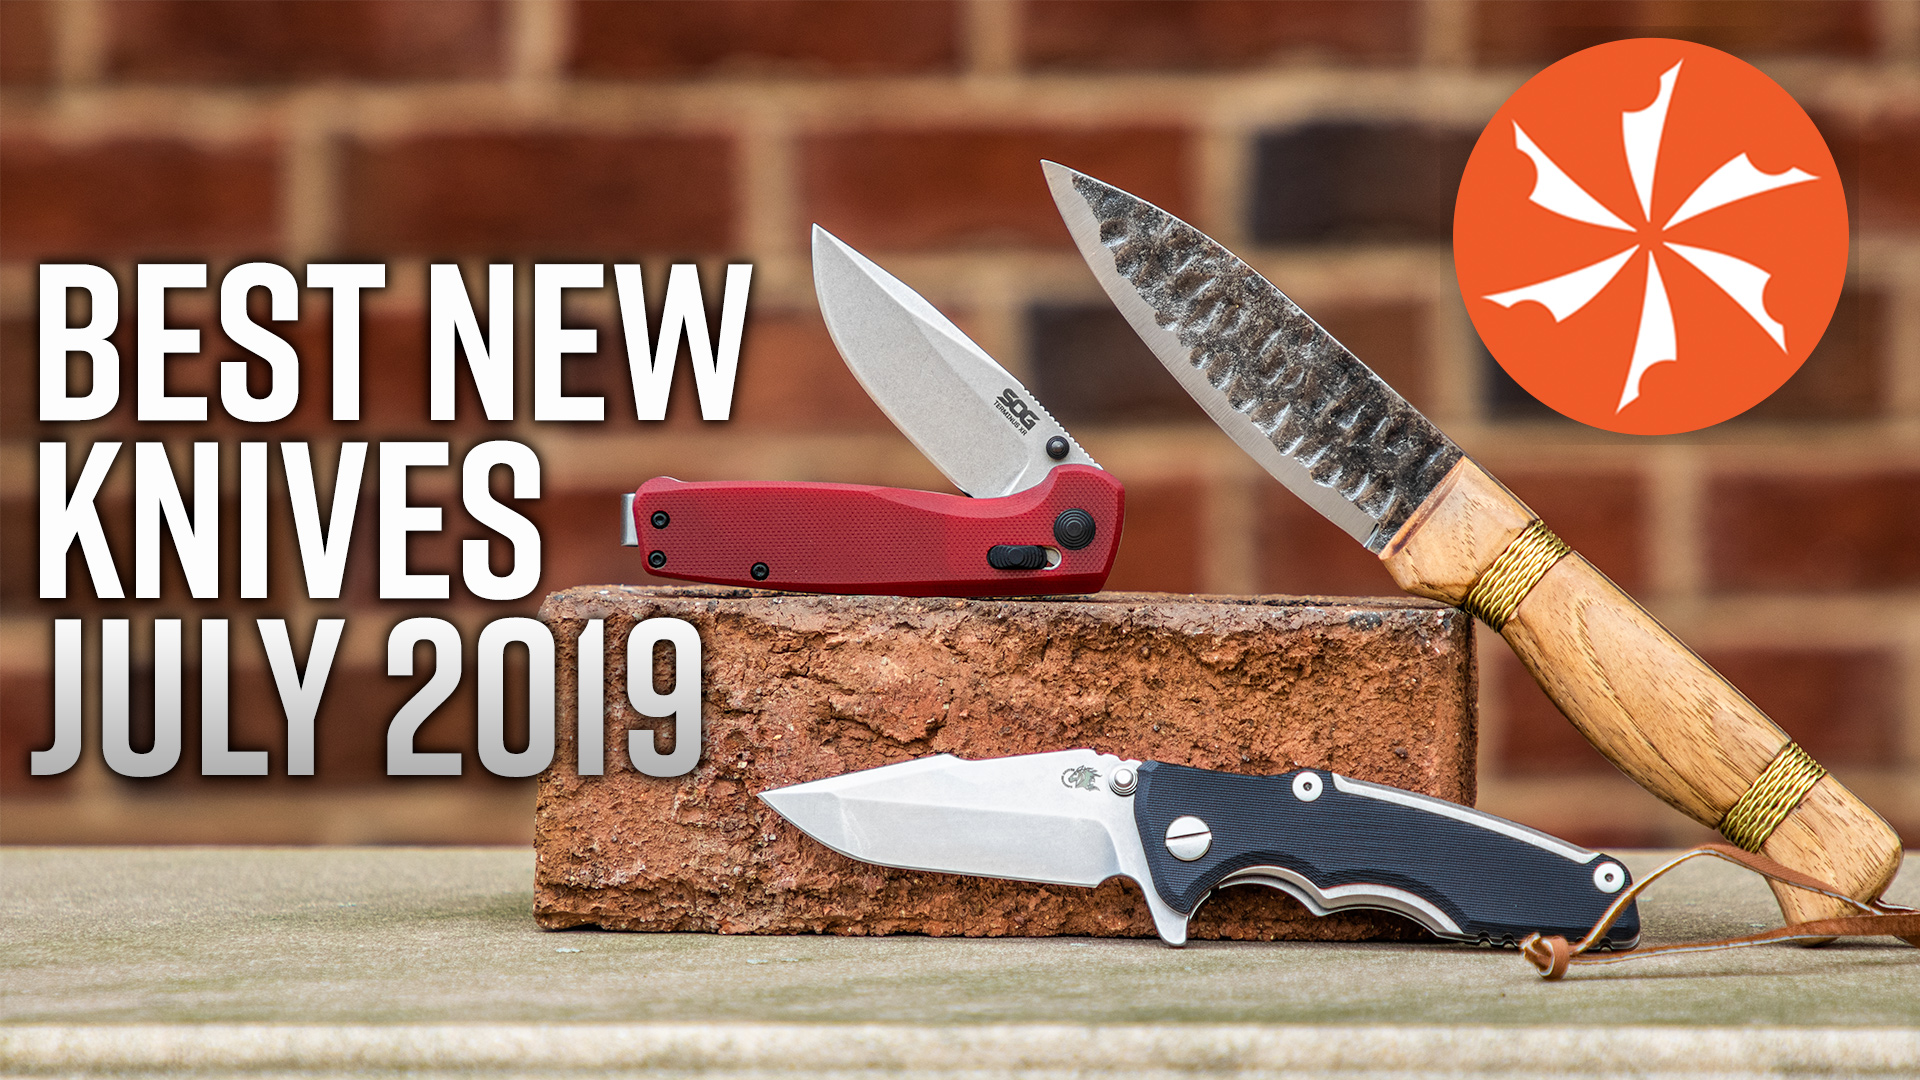 Best-New-Knives-2019